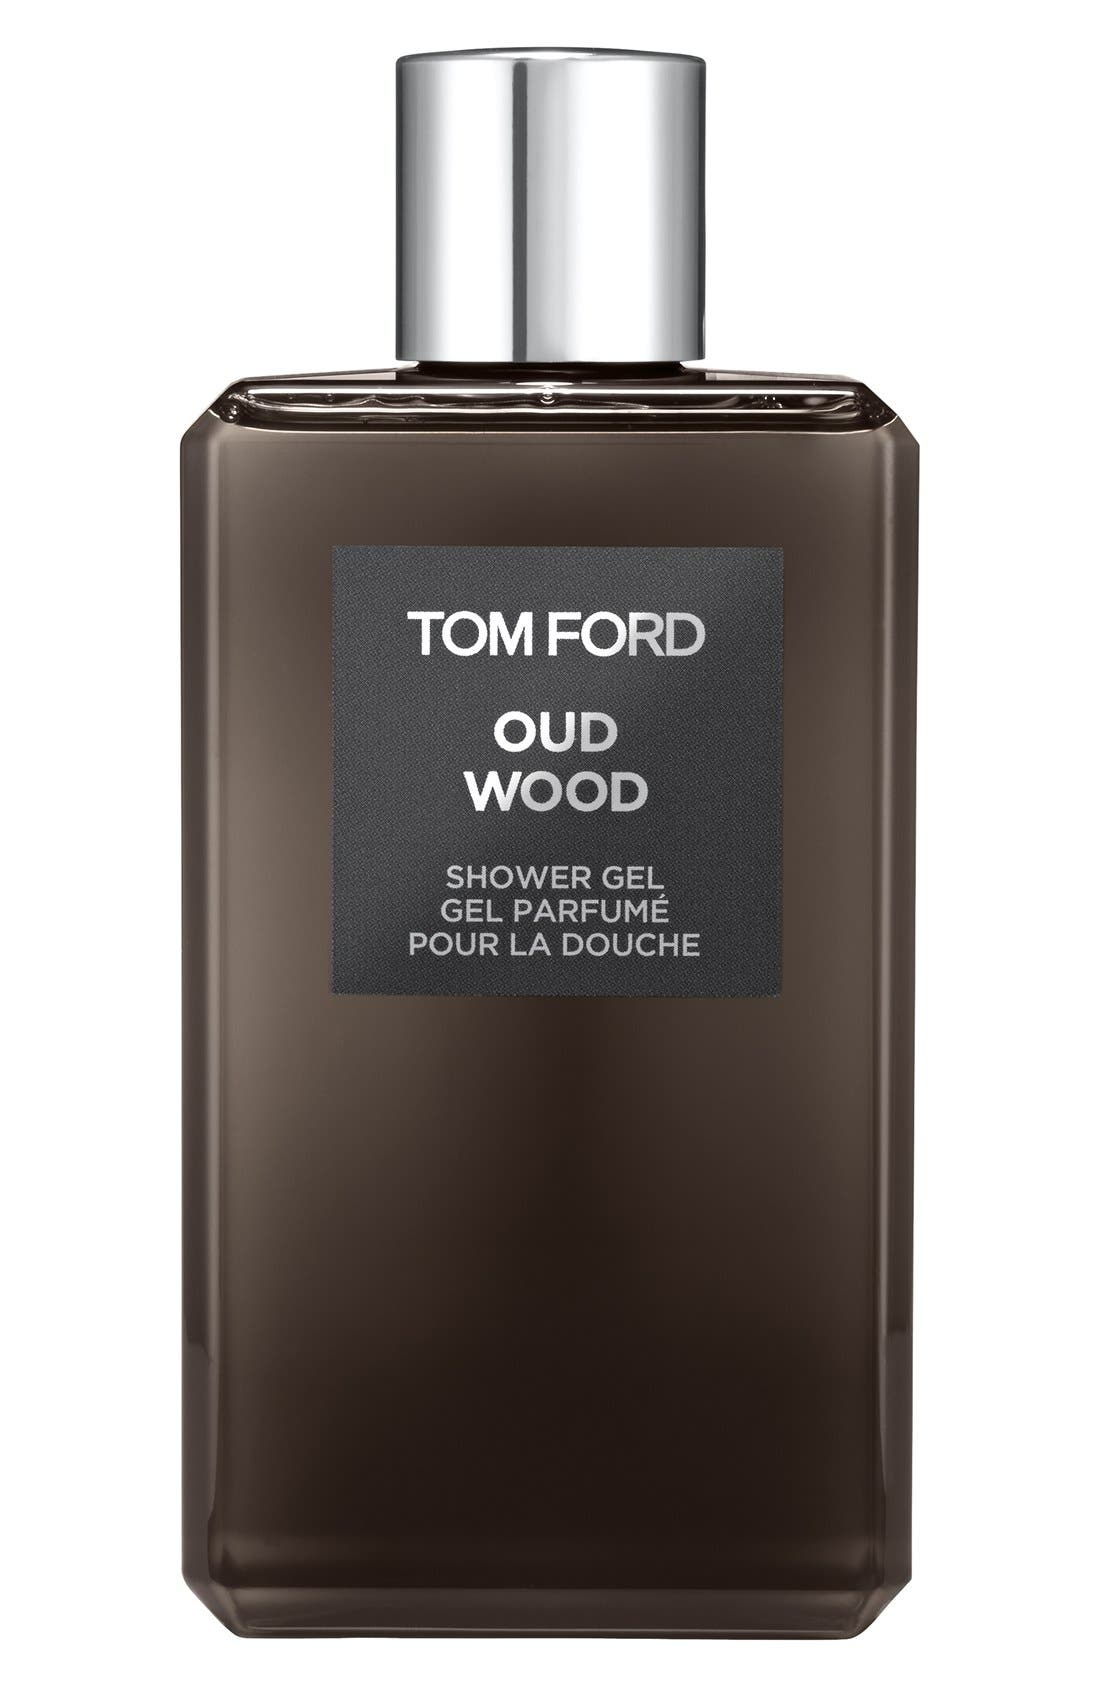 Tom Ford 'Oud Wood' Shower Gel